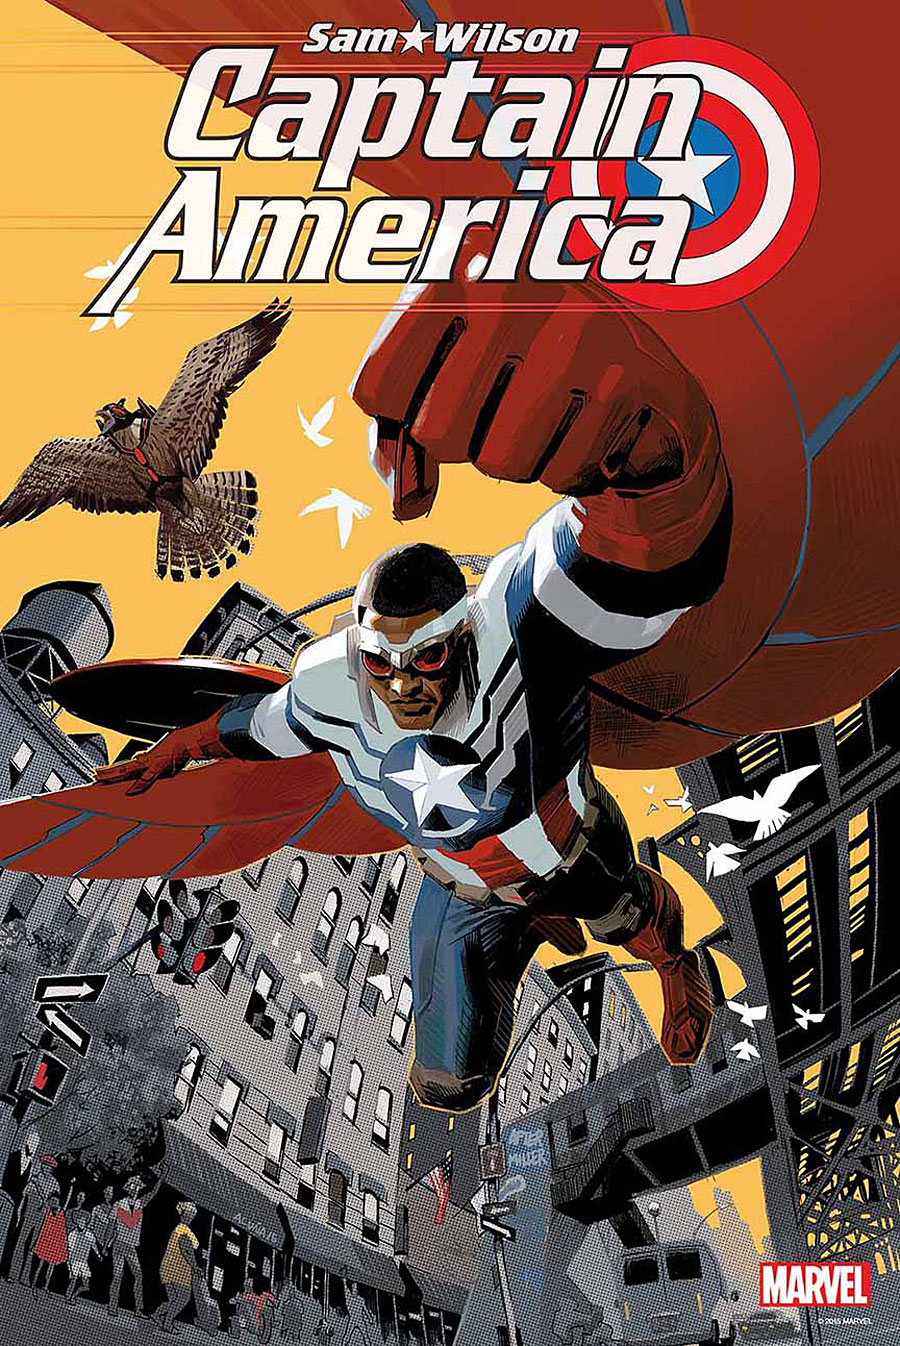 First look at Sam Wilson: Captain America!